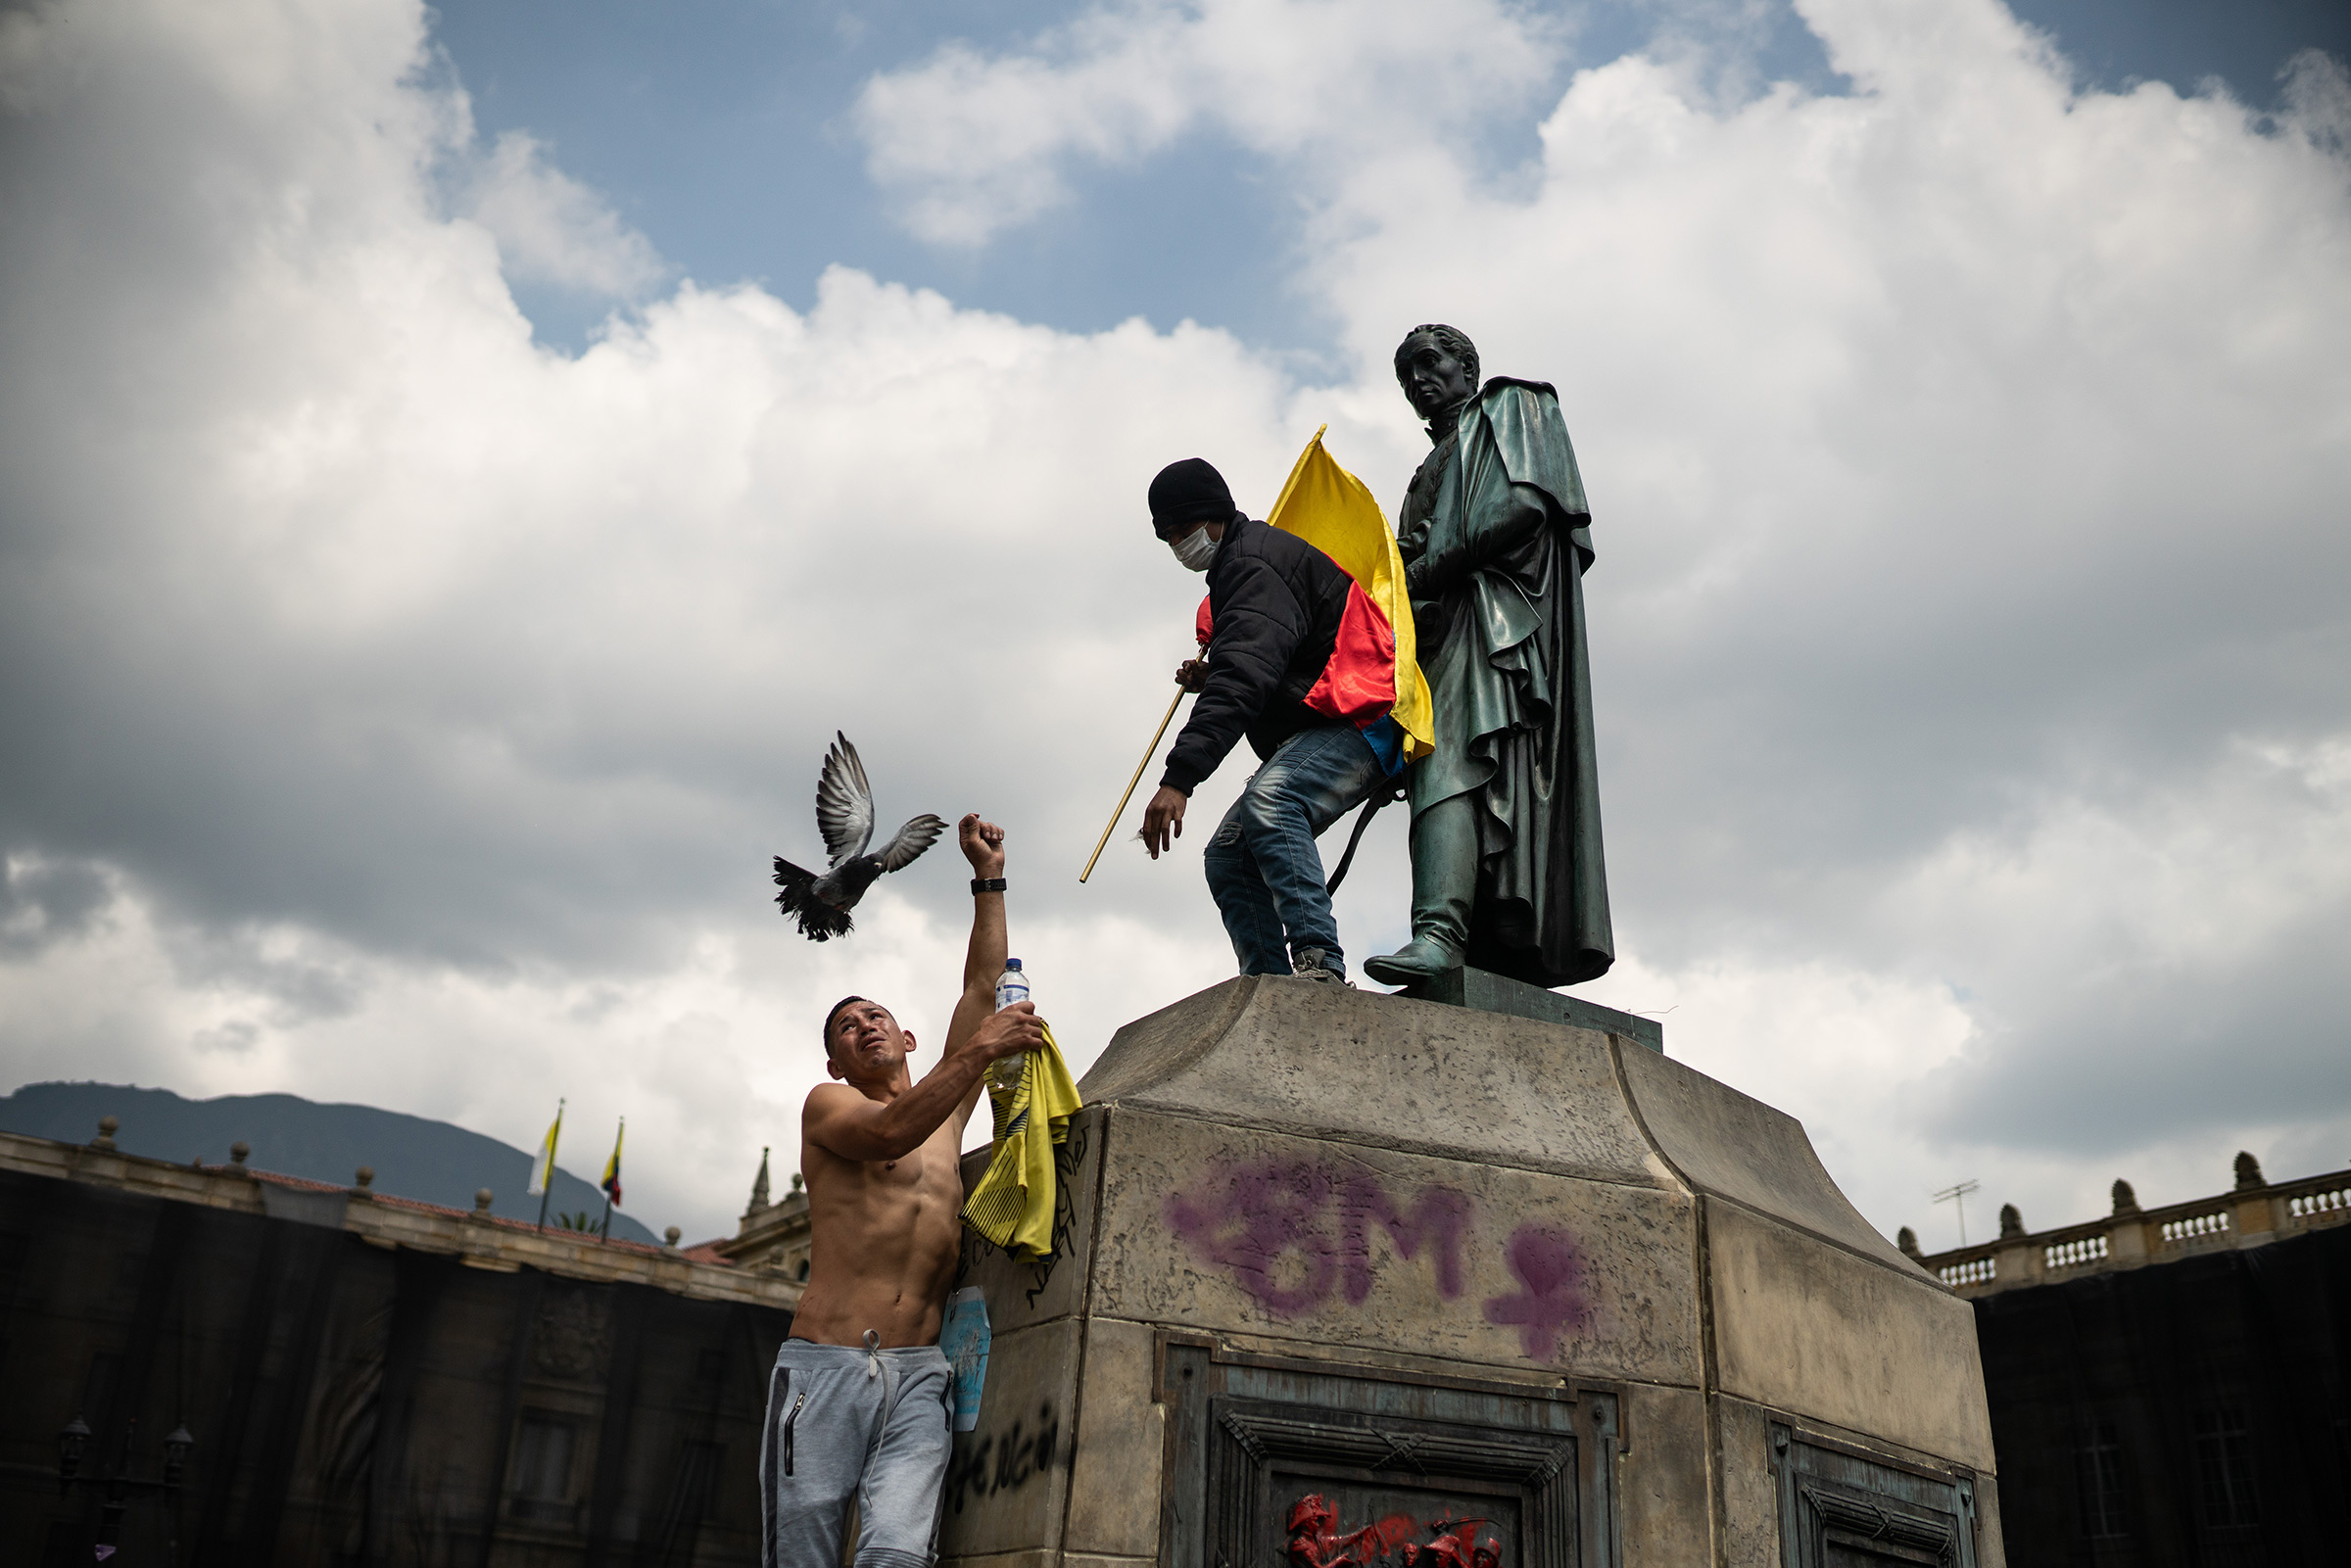 Protesters climb on the statue of Simón Bolívar, the South American independence leader and former president of Colombia, as thousands of Colombians take to the streets to protest against the government's tax reform in Bogotá on May 1.